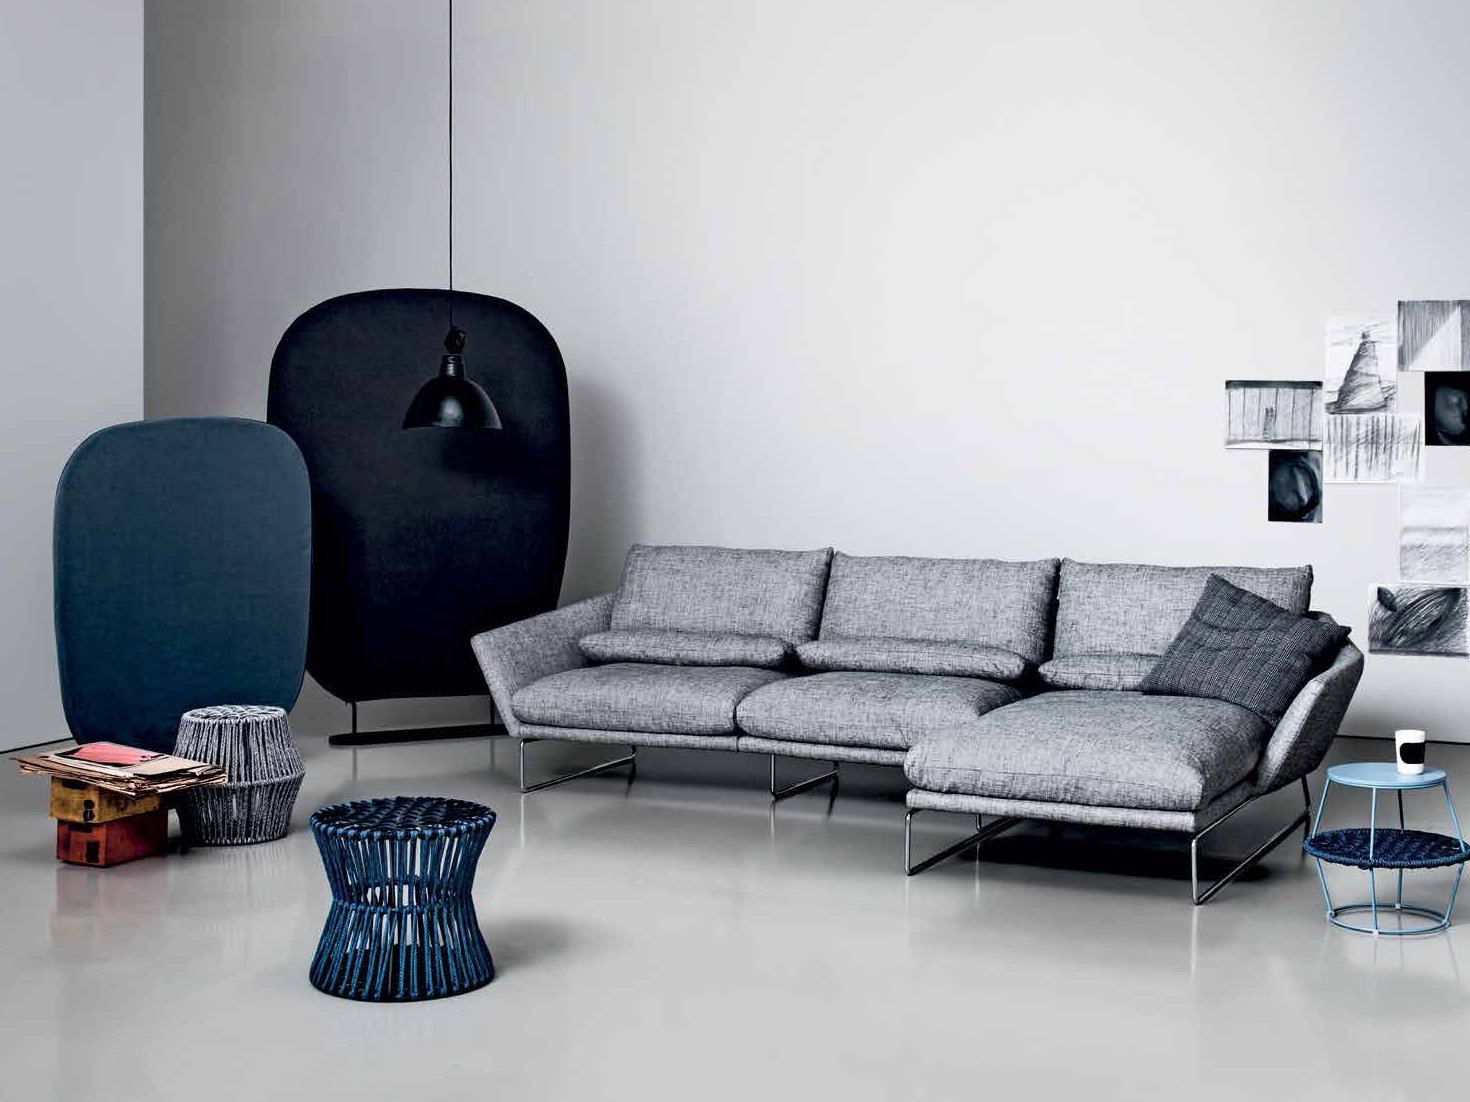 New york soft sofa with chaise longue by saba italia - Sofa rinconera con chaise longue ...